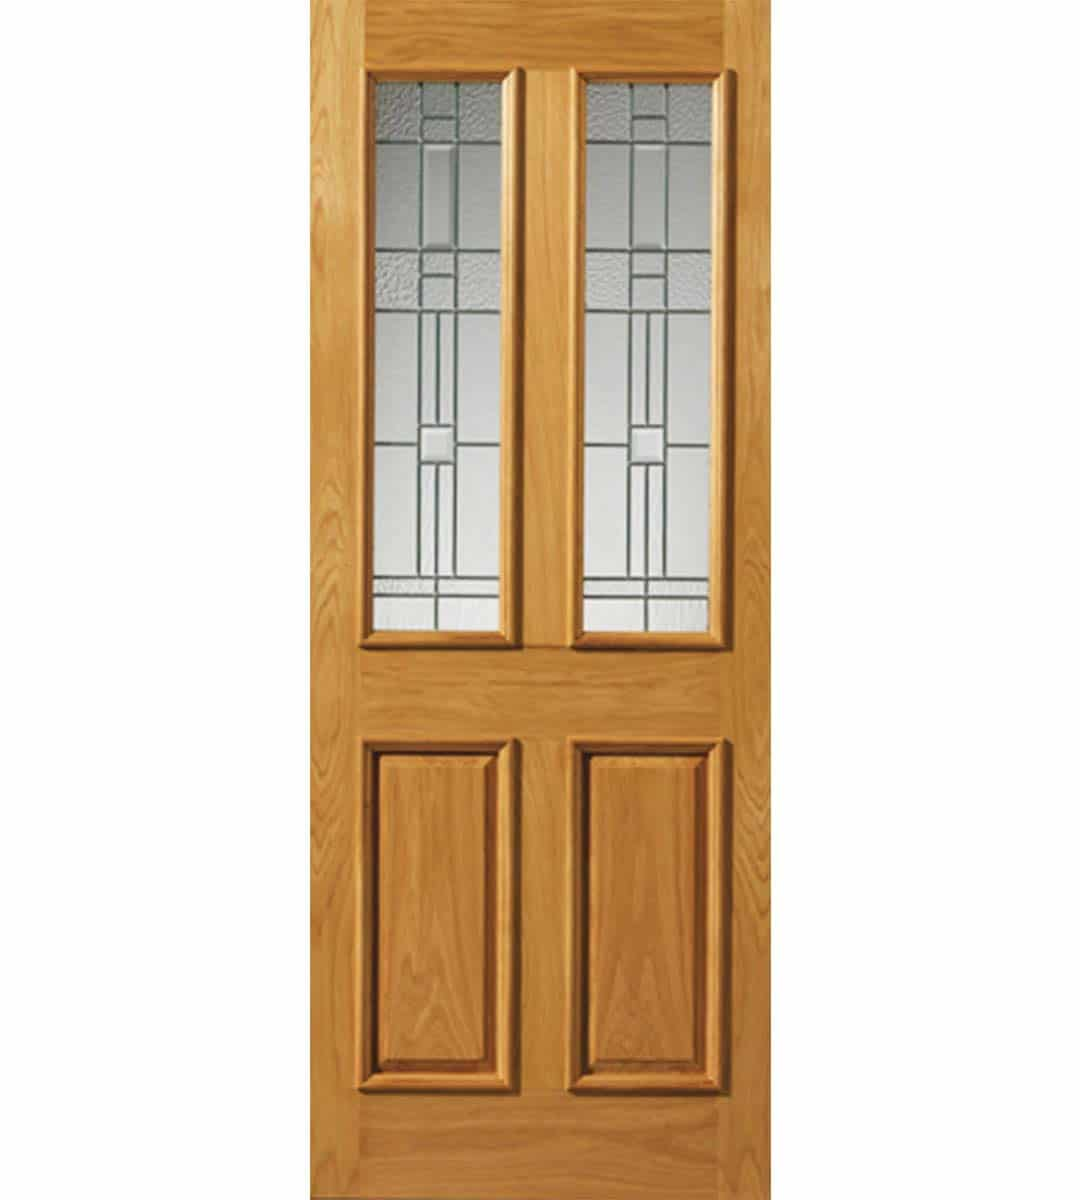 rioja obscure glass door with zinc camings oak exterior door